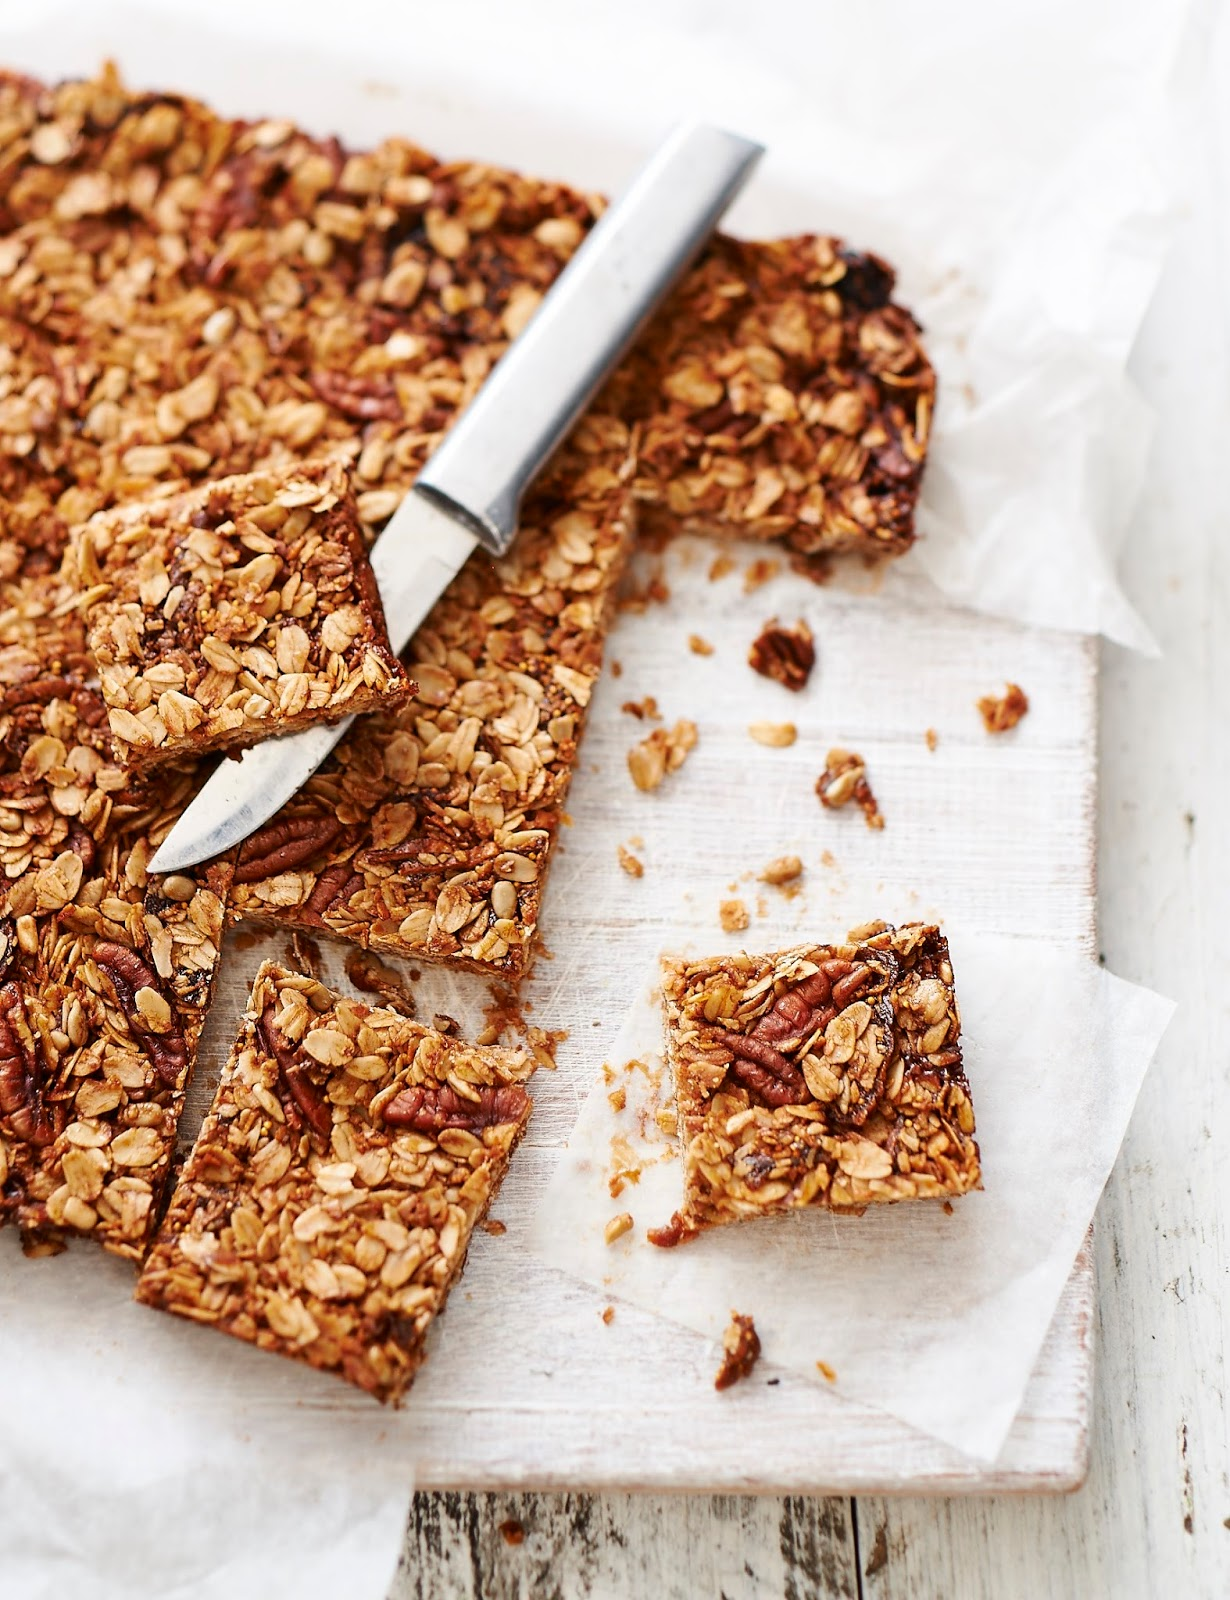 How To Make Lisa Roukin's Dried Fig, Pecan And Dark Chocolate Oat Bars